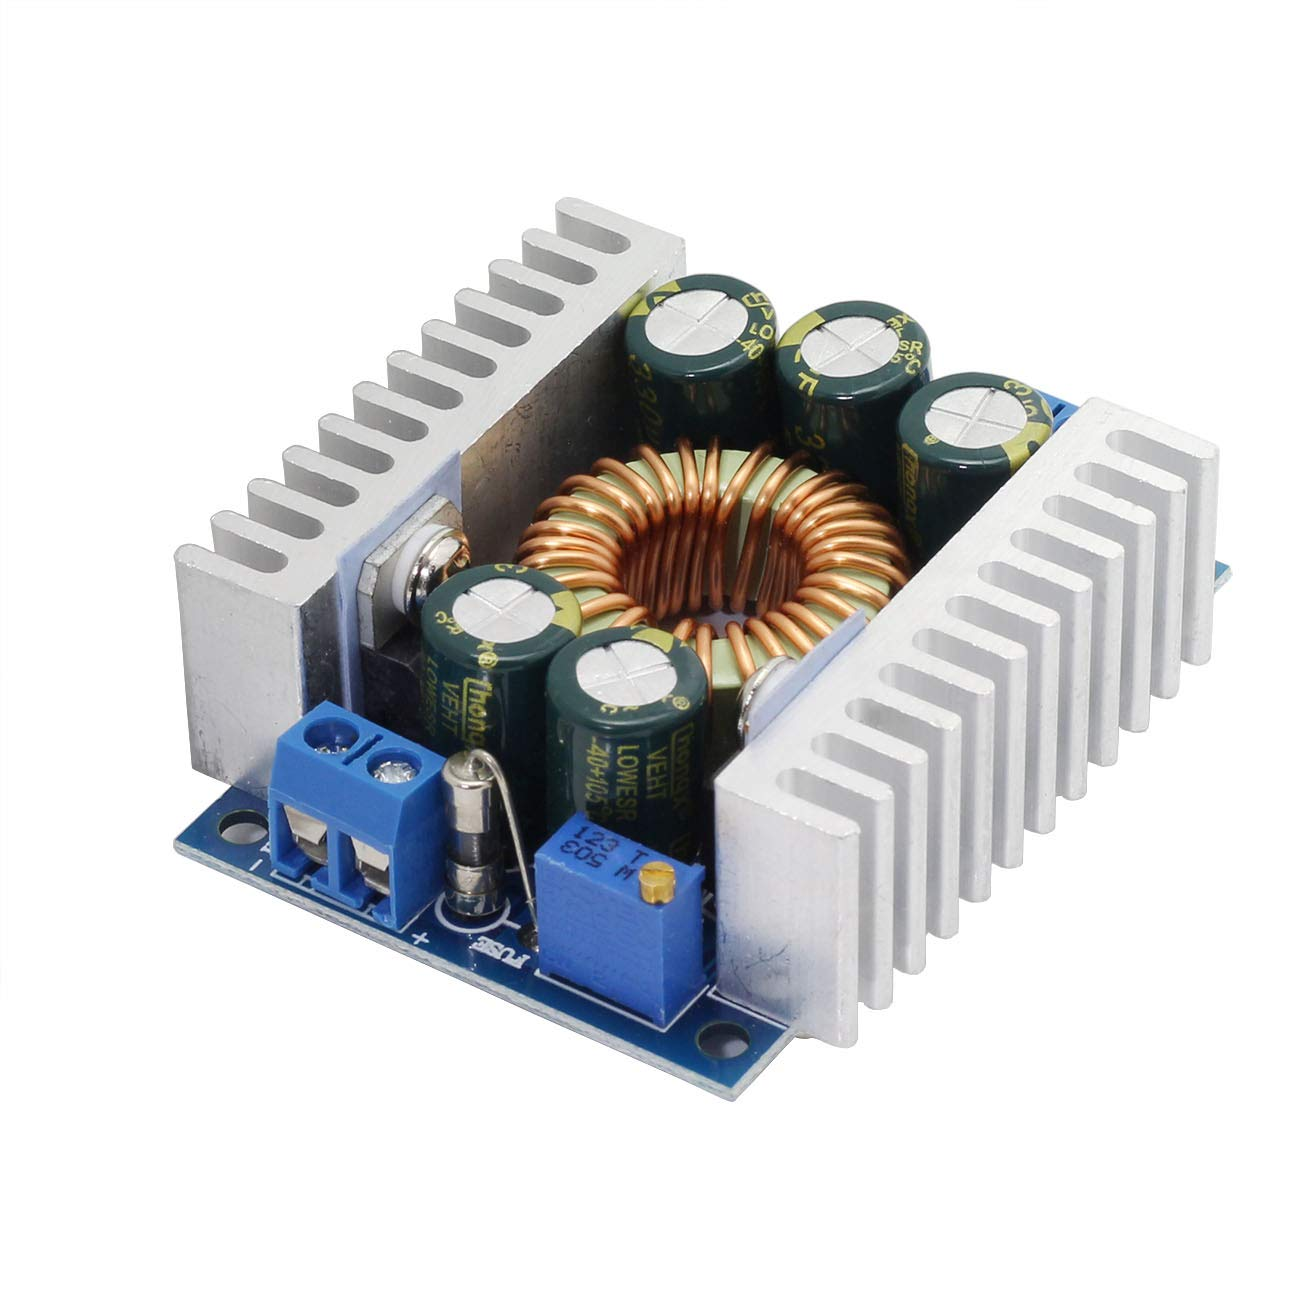 Zyamy 12a High Power Dc Buck Converter Adjustable Mode Supply A Low Frequency Frequencylow Step Down Module 45 30v To 12 Home Kitchen